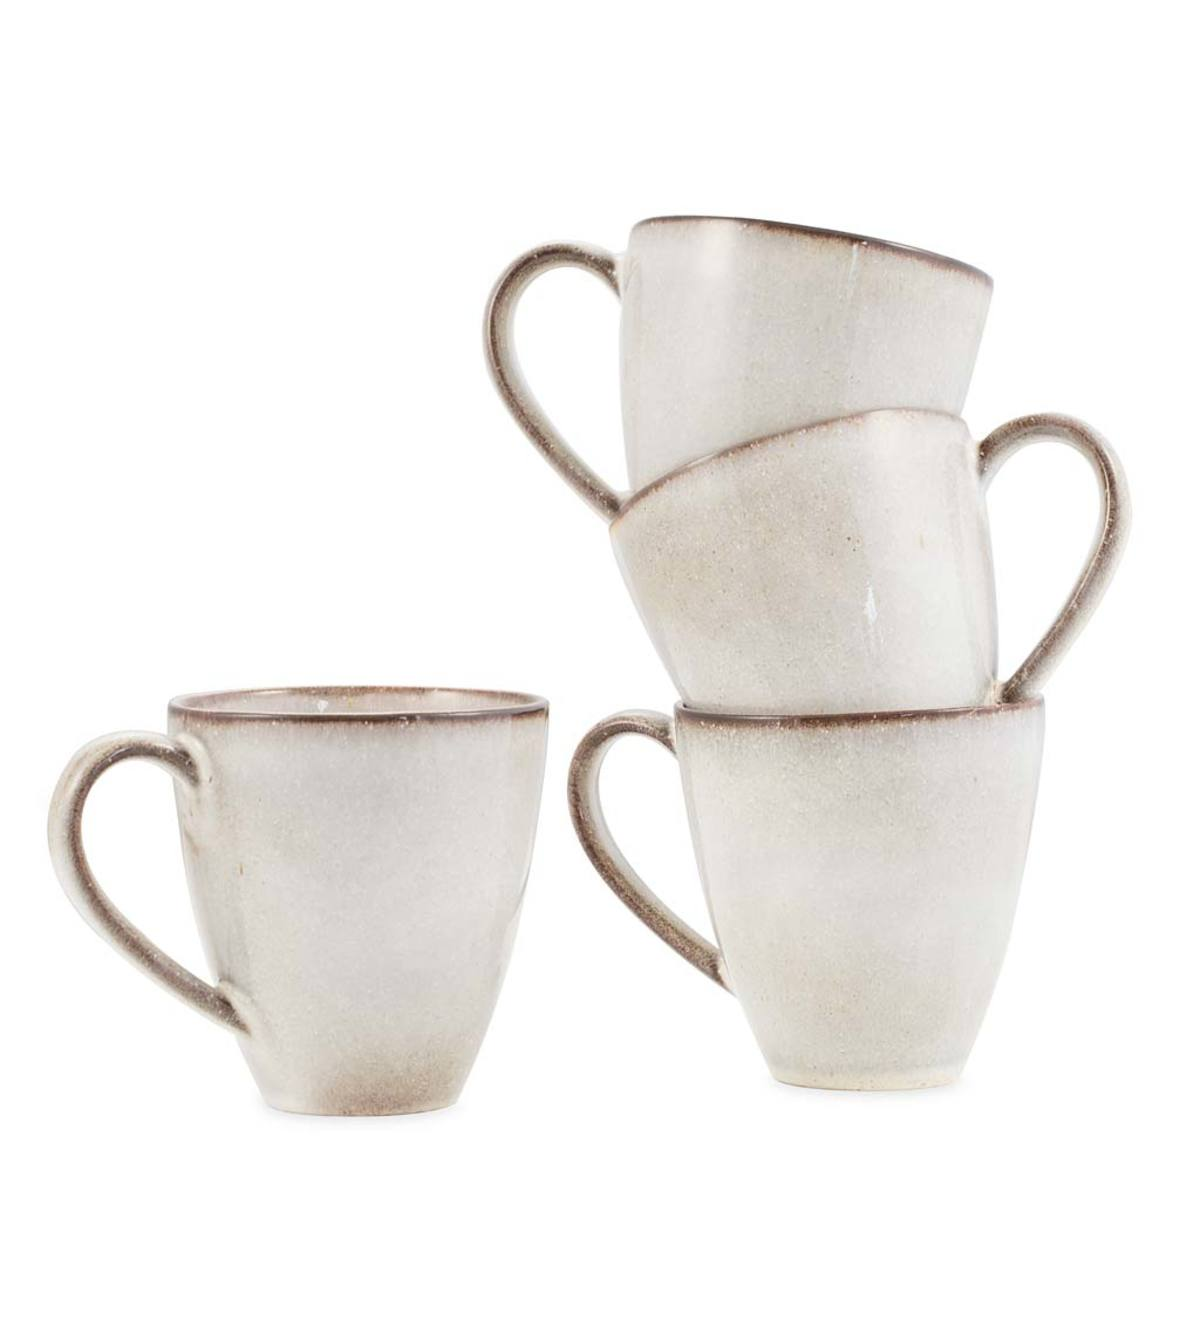 Farmstead 10oz. Stoneware Tall Mugs, Set of 4 - Bisque